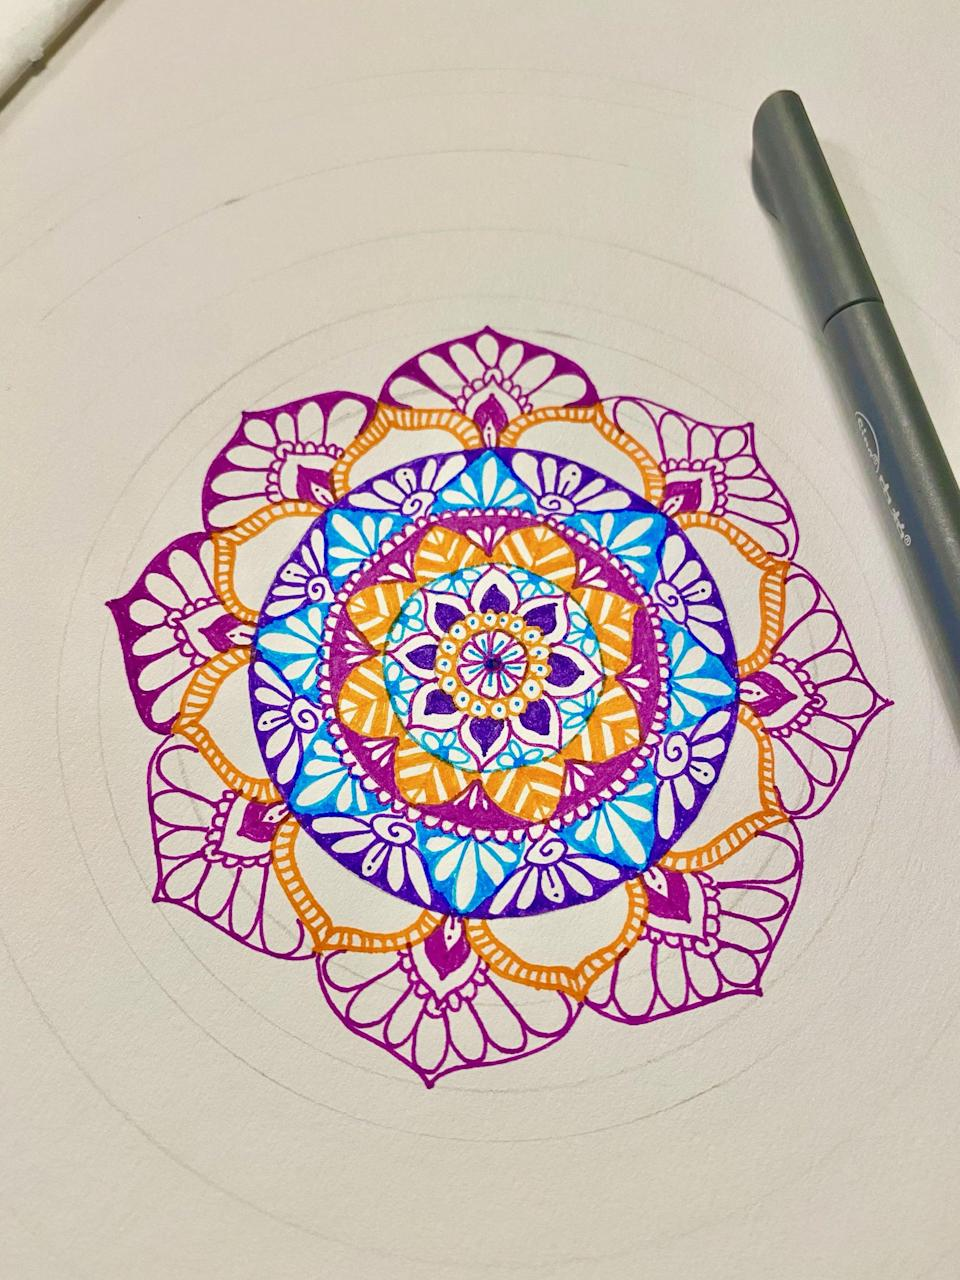 """<p>While exploring primary foods, I also got back into my love of drawing mandalas, water color painting, and doing <a href=""""https://www.popsugar.com/fitness/what-is-zentangle-drawing-meditation-46934394"""" class=""""link rapid-noclick-resp"""" rel=""""nofollow noopener"""" target=""""_blank"""" data-ylk=""""slk:Zentangle"""">Zentangle</a> (meditative doodling). This not only taps into my creativity, but it's also very calming and a great way to relieve stress at the end of a busy day. I sometimes draw alone, but my daughter also loves drawing, so spending time connecting with her also feeds my soul.</p>"""